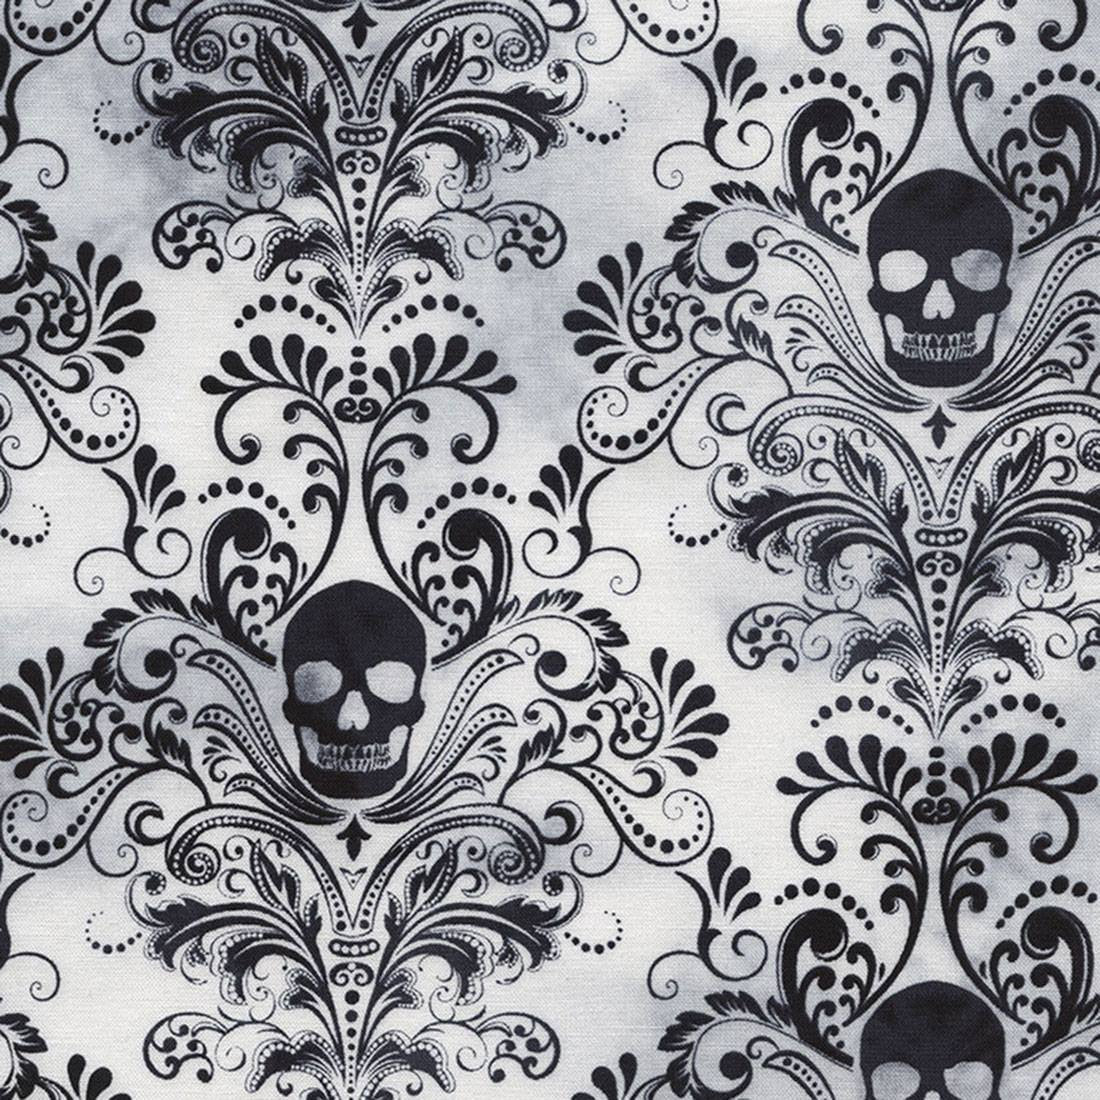 Wicked Eve Skull Damask White Cotton